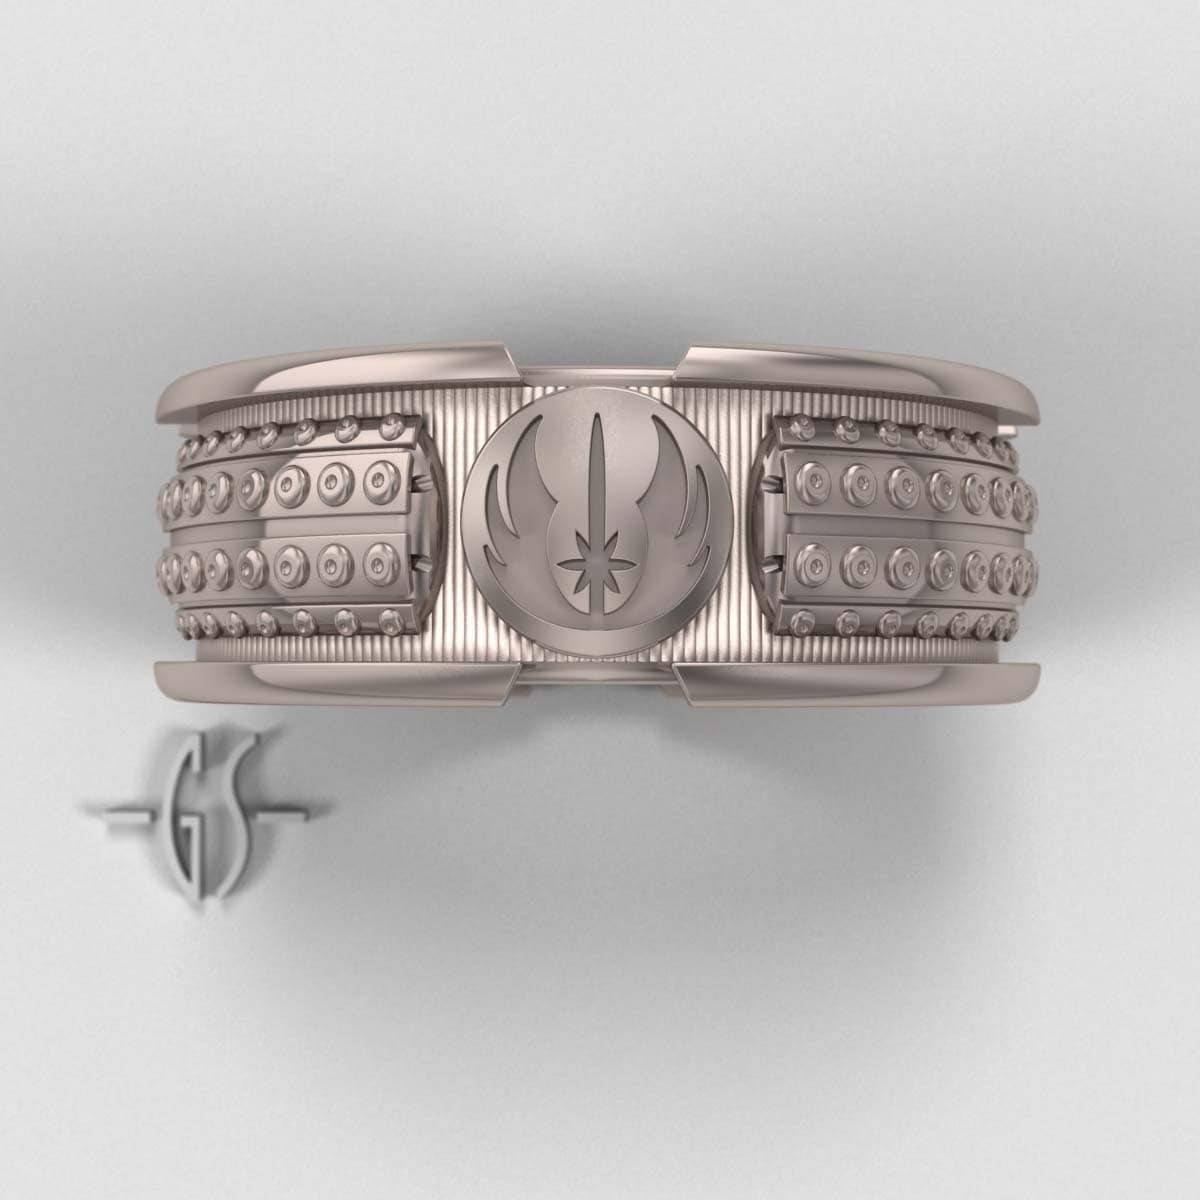 Star wars lightsaber ring mens engagement ring 14k for Star wars mens wedding ring